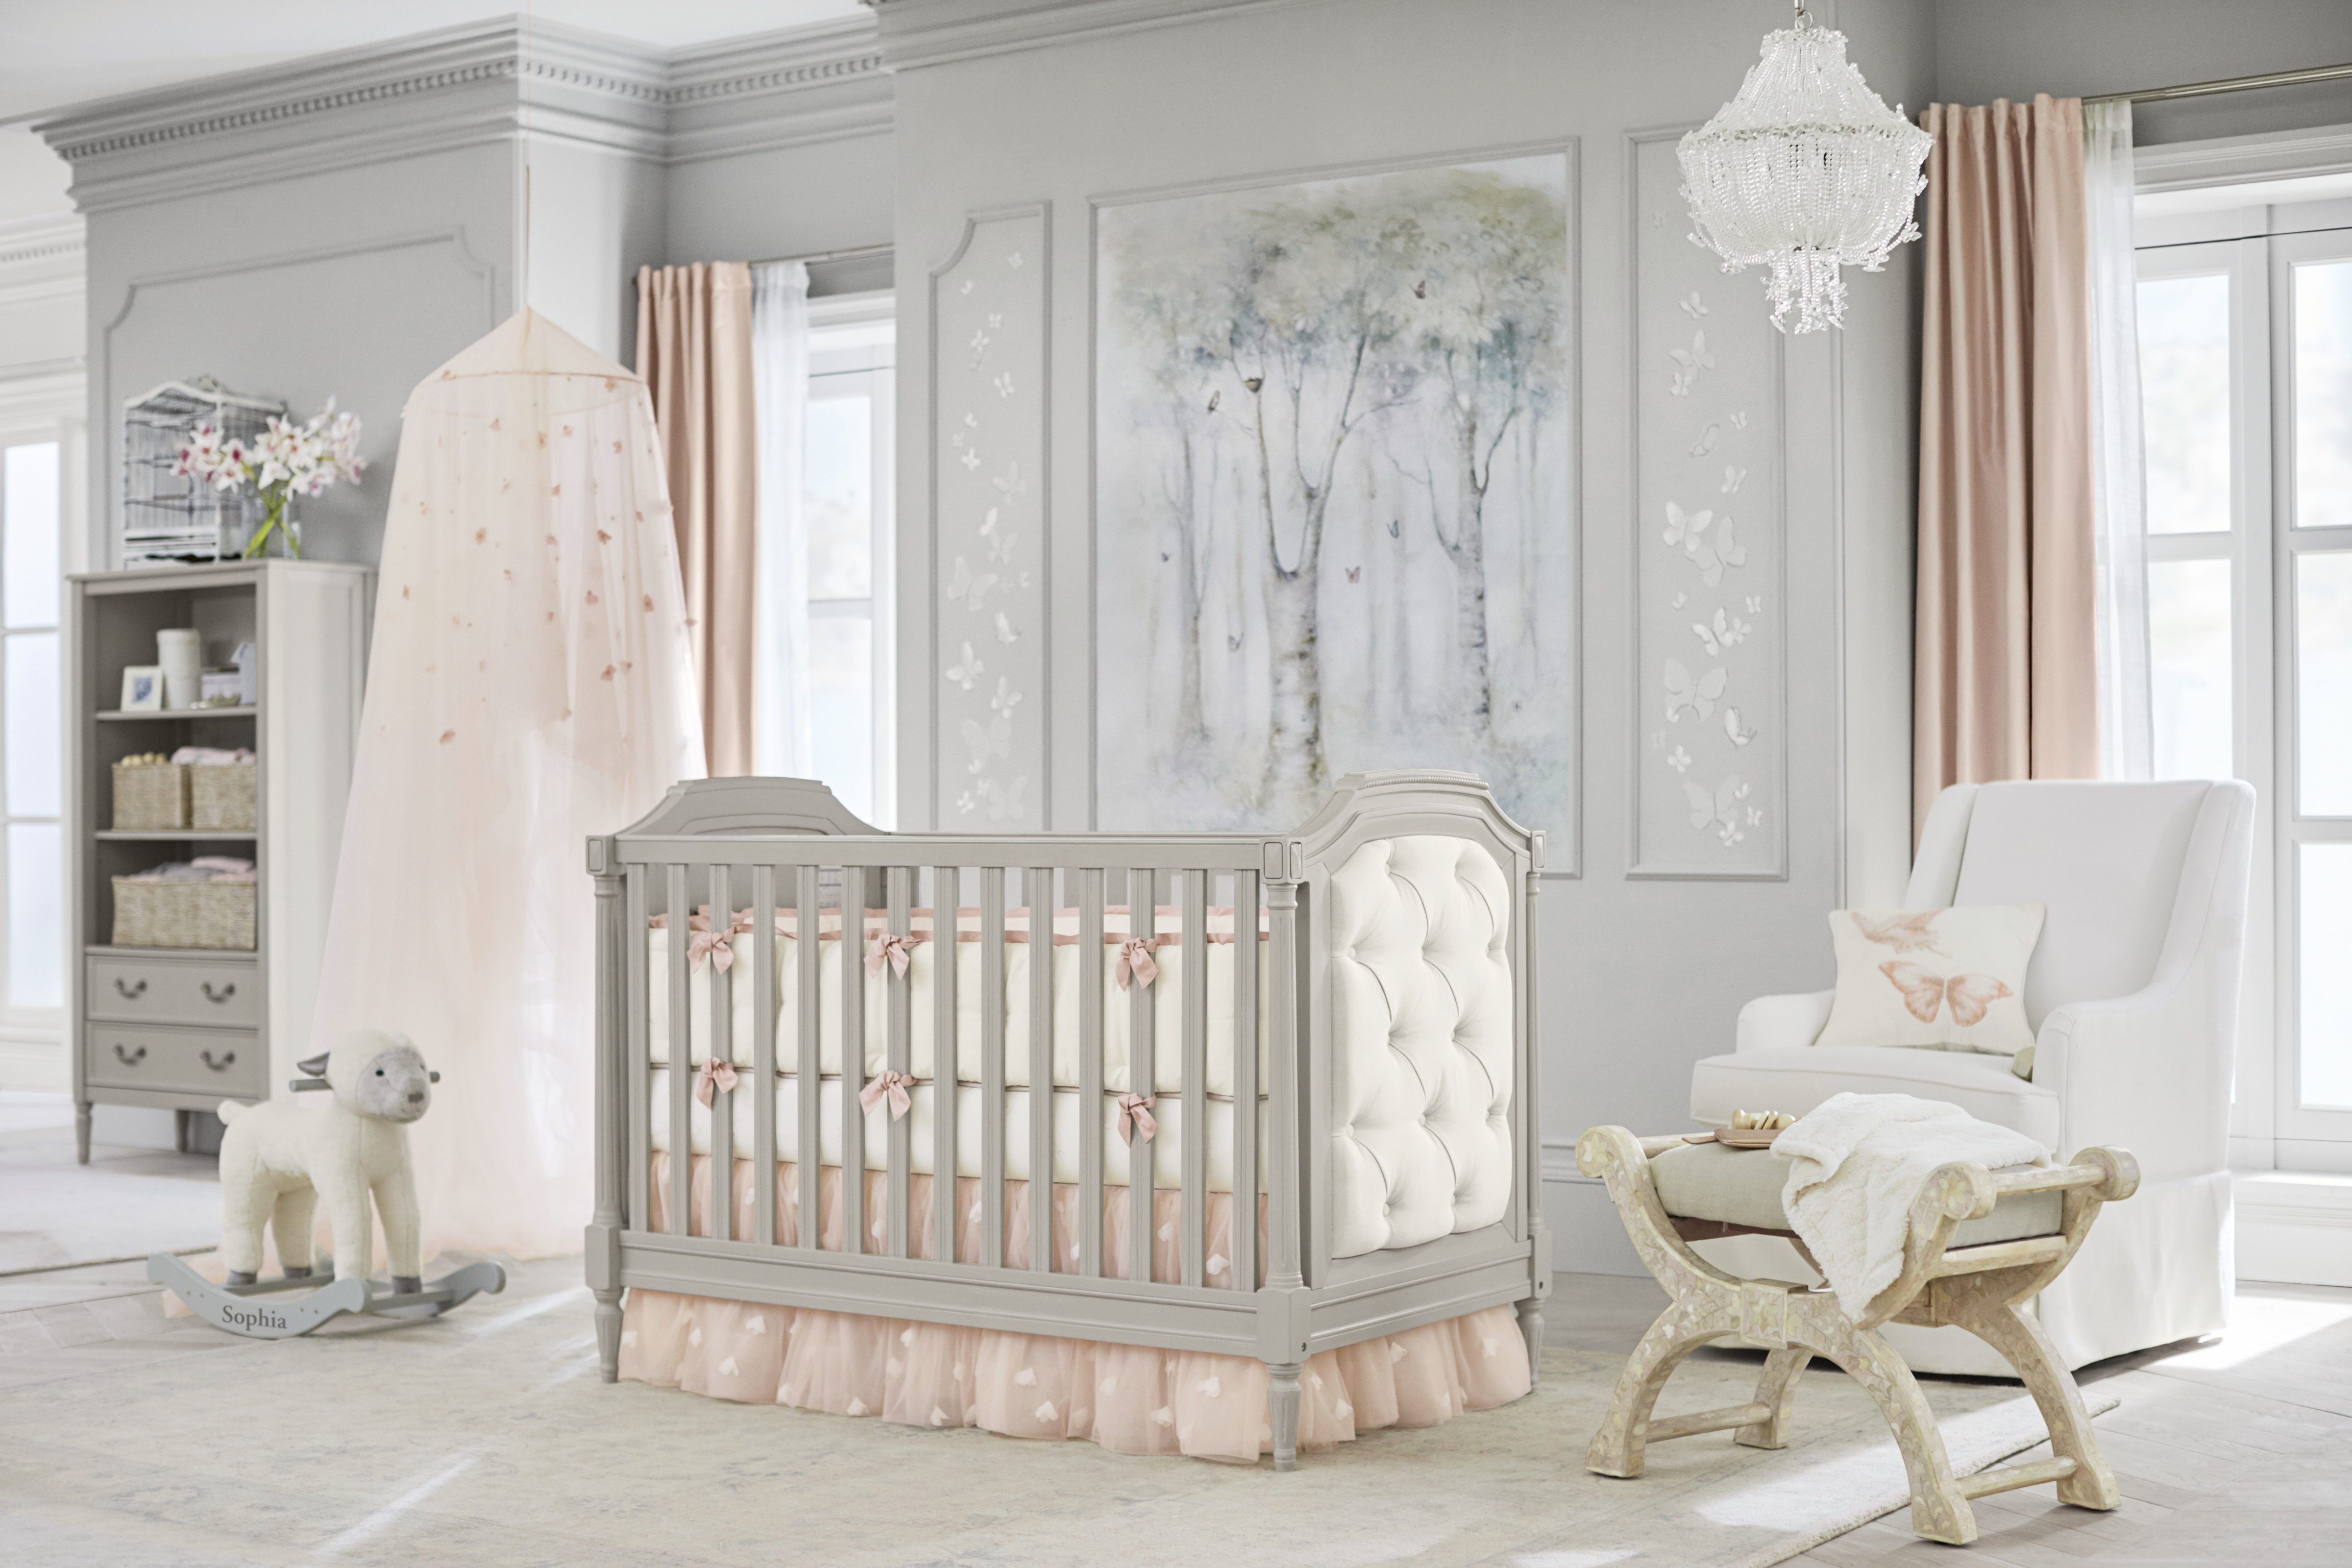 sophia nursery from the monique lhuillier pottery barn kids collection debuting today online and - Pottery Barn Babies Room